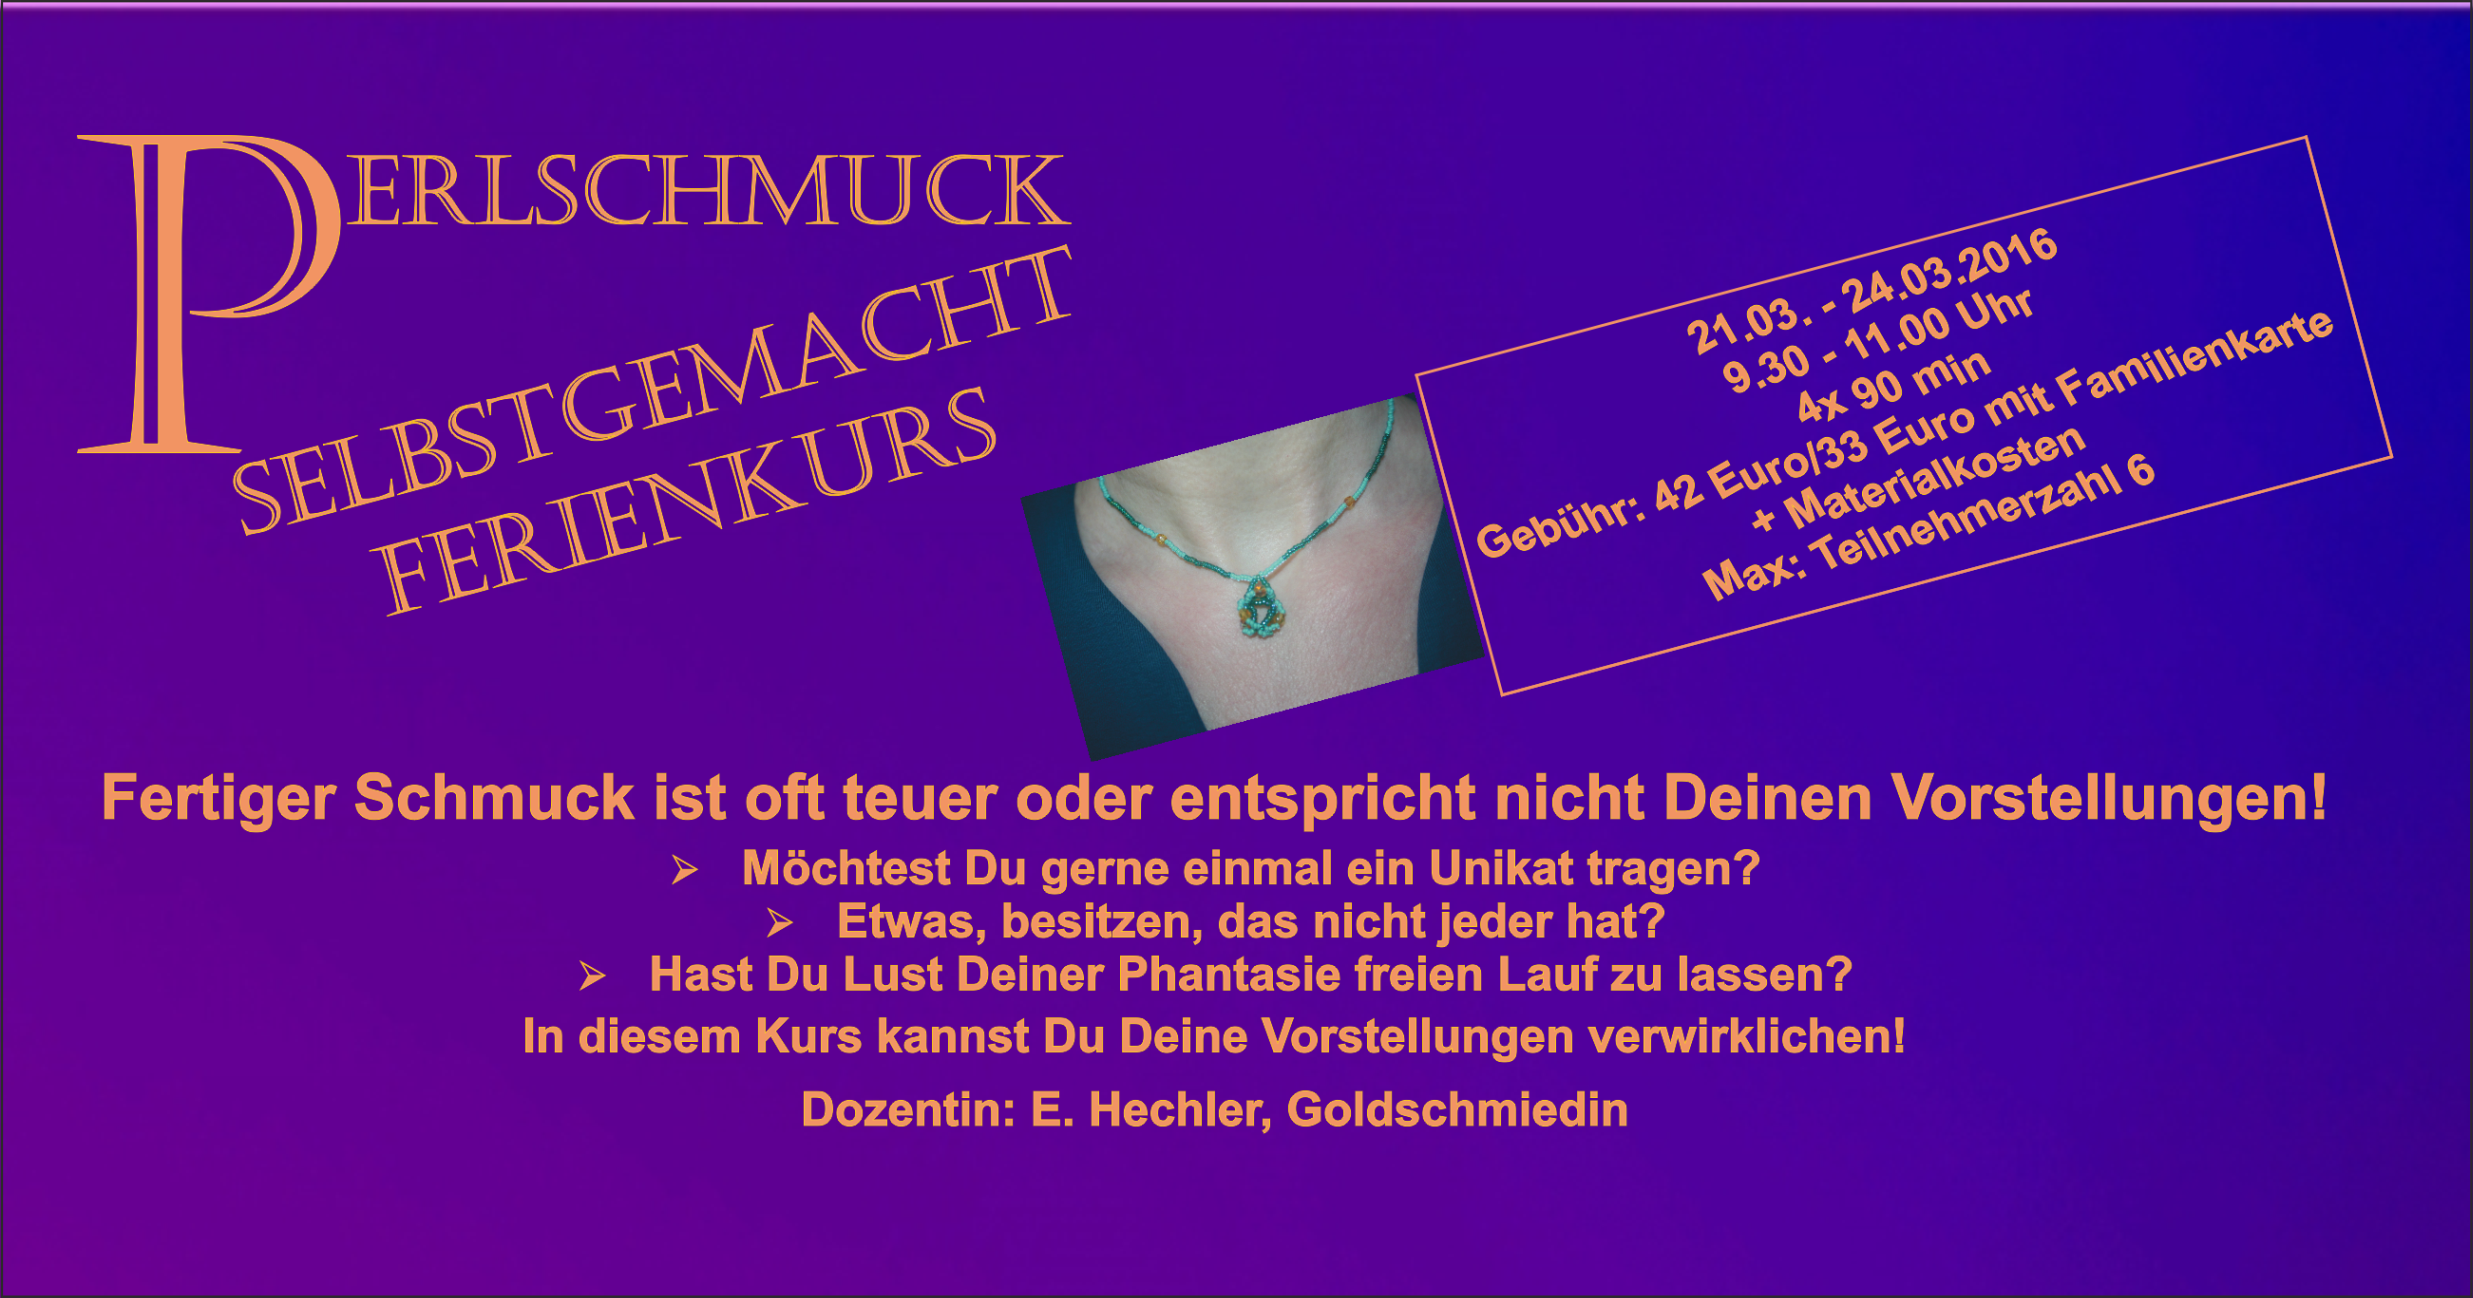 Perlschmuck  2016 orginal Bitmap2